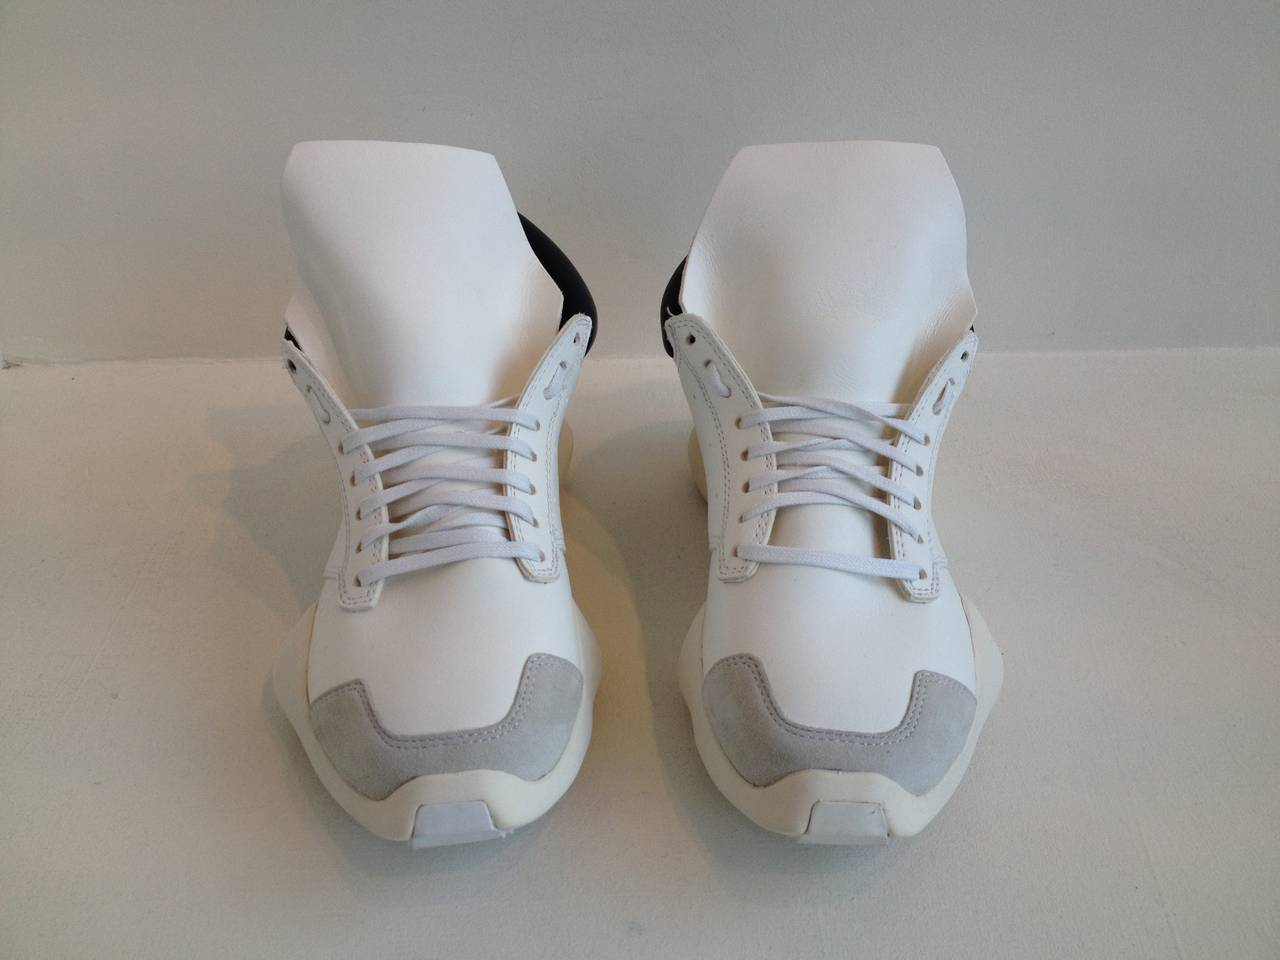 Off-the-runway sneakers from that iconic and groundbreaking Rick Owens x Adidas collaboration are so covetable - hypercurrent and very distinctive, they're recognizable both as a part of this original Spring Summer 2014 collection and because of